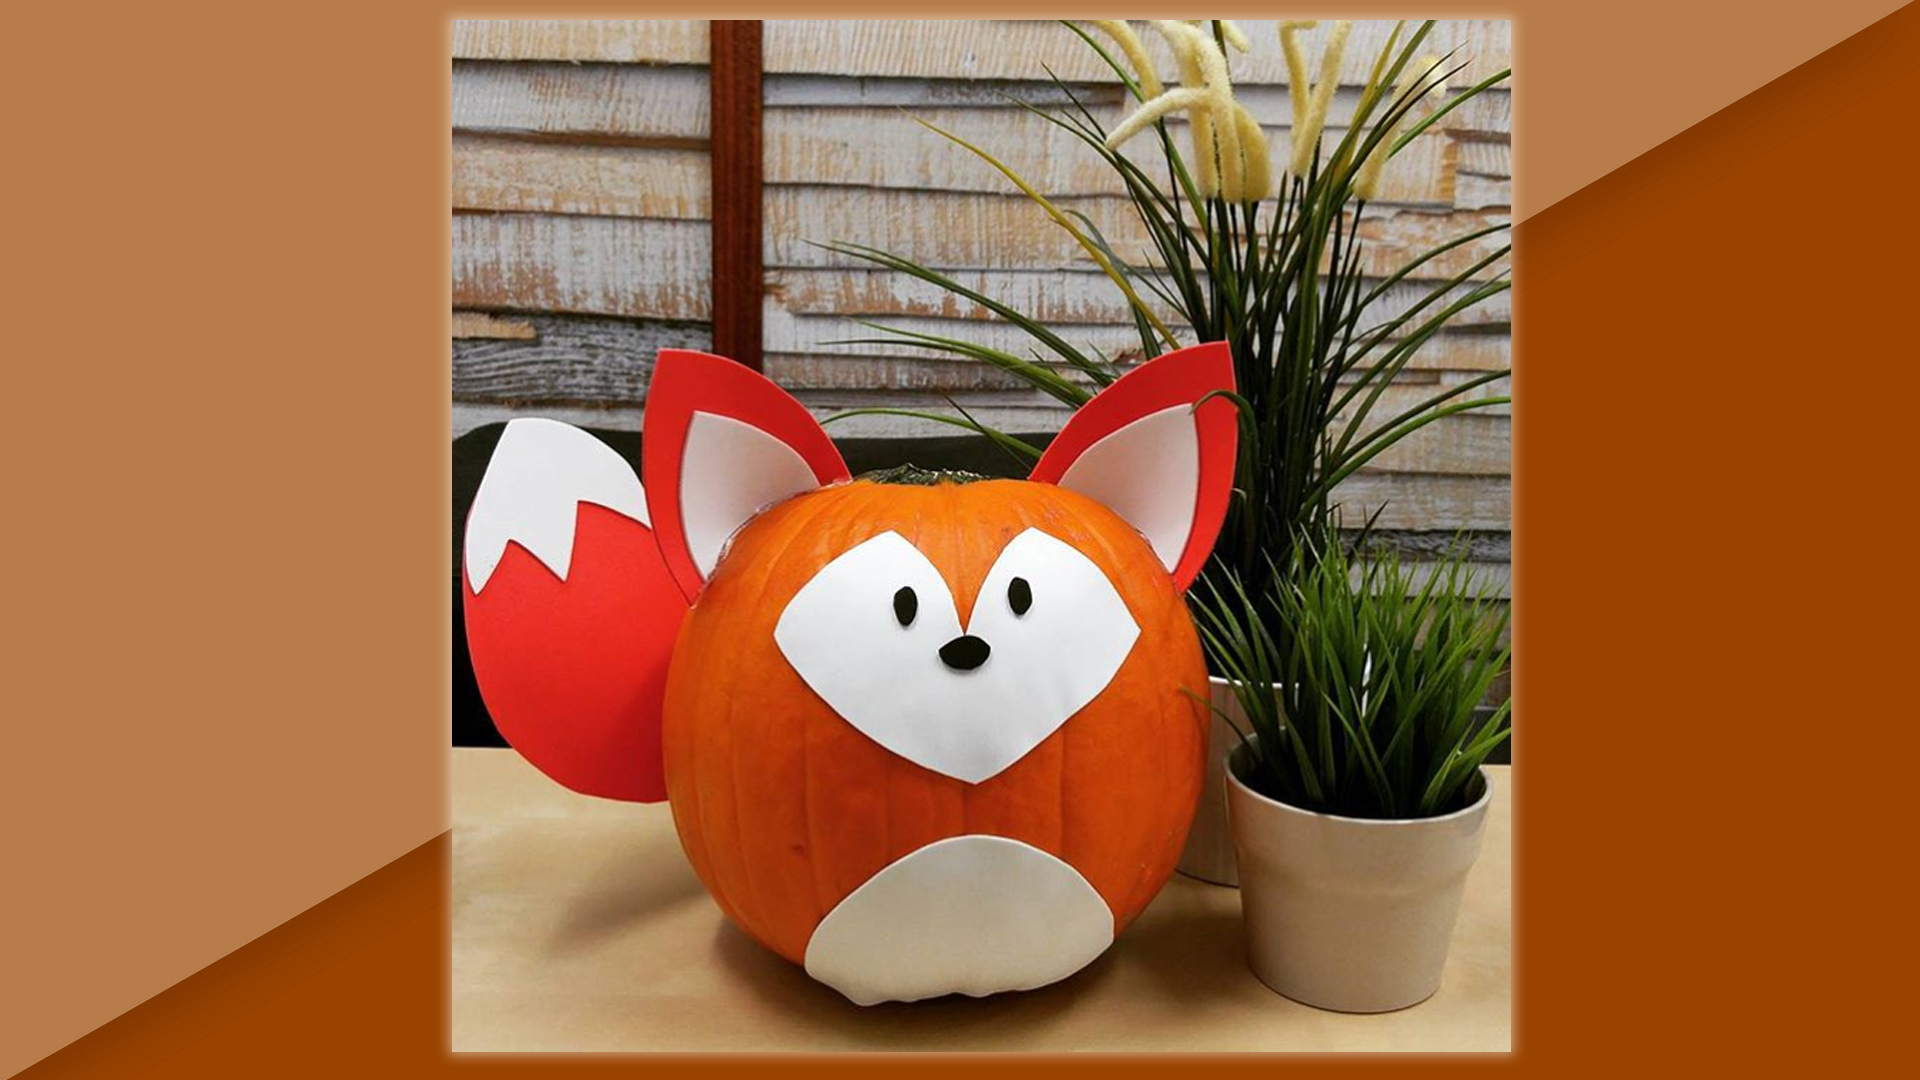 Painted Pumpkin Ideas 13 No Carve Pumpkin Decorations To Try